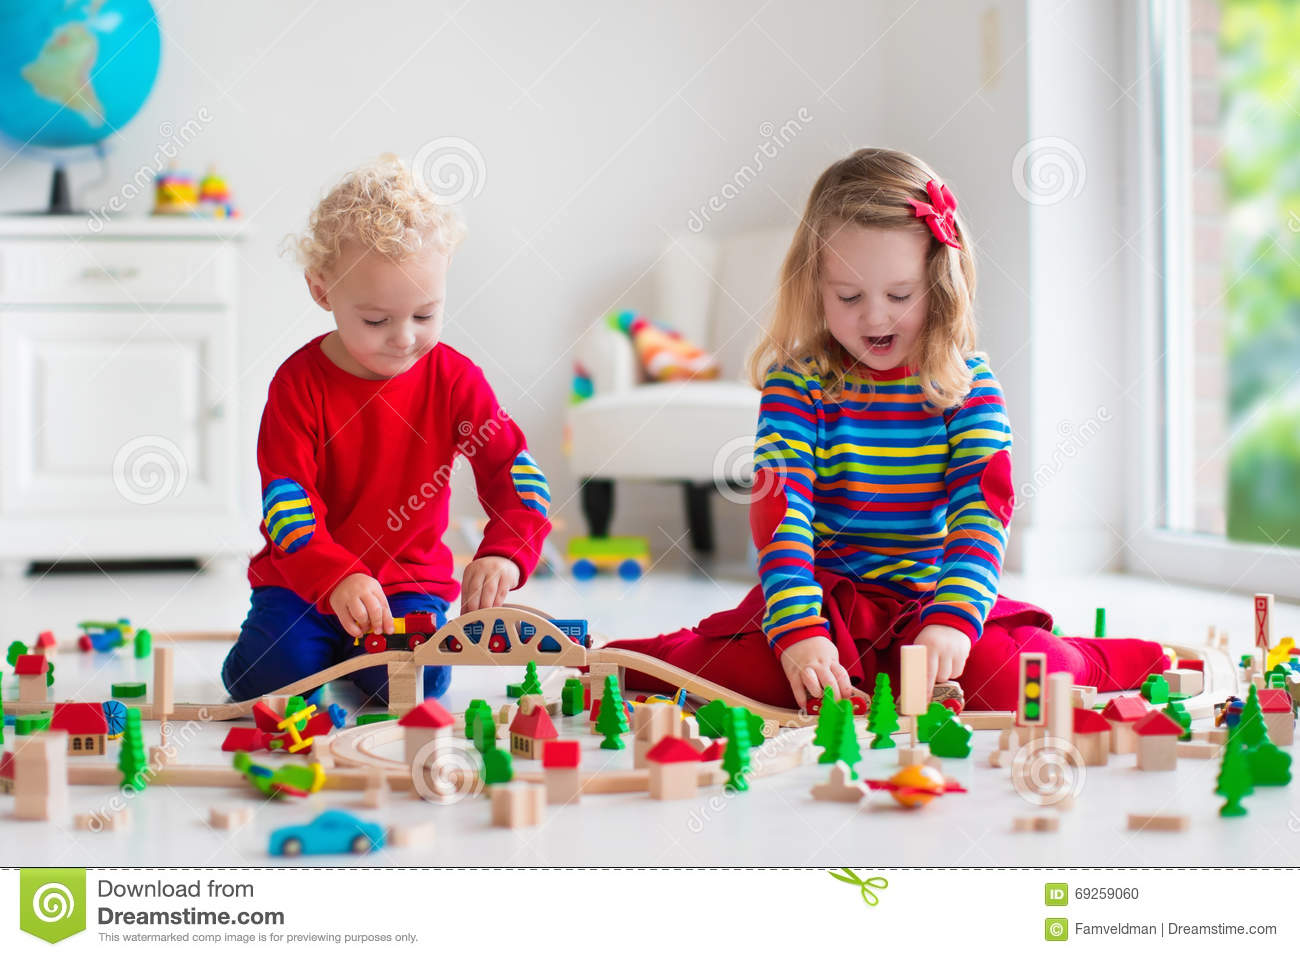 Children Playing With Toy Railroad And Train Stock Photo ...